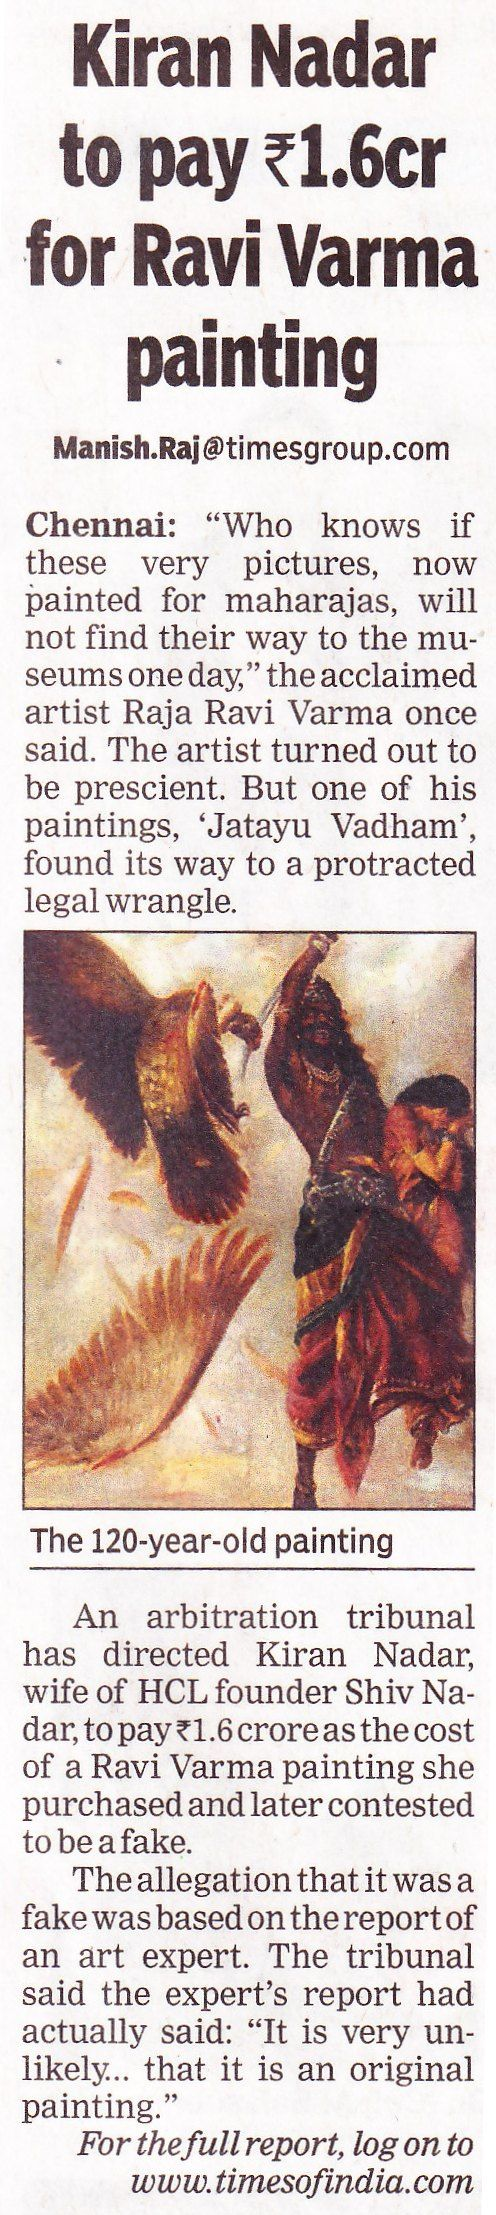 Kiran Nadar told to pay up Rs 1.6 cr for Ravi Varma painting: Times of India, 18th Dec 2014, Bangalore